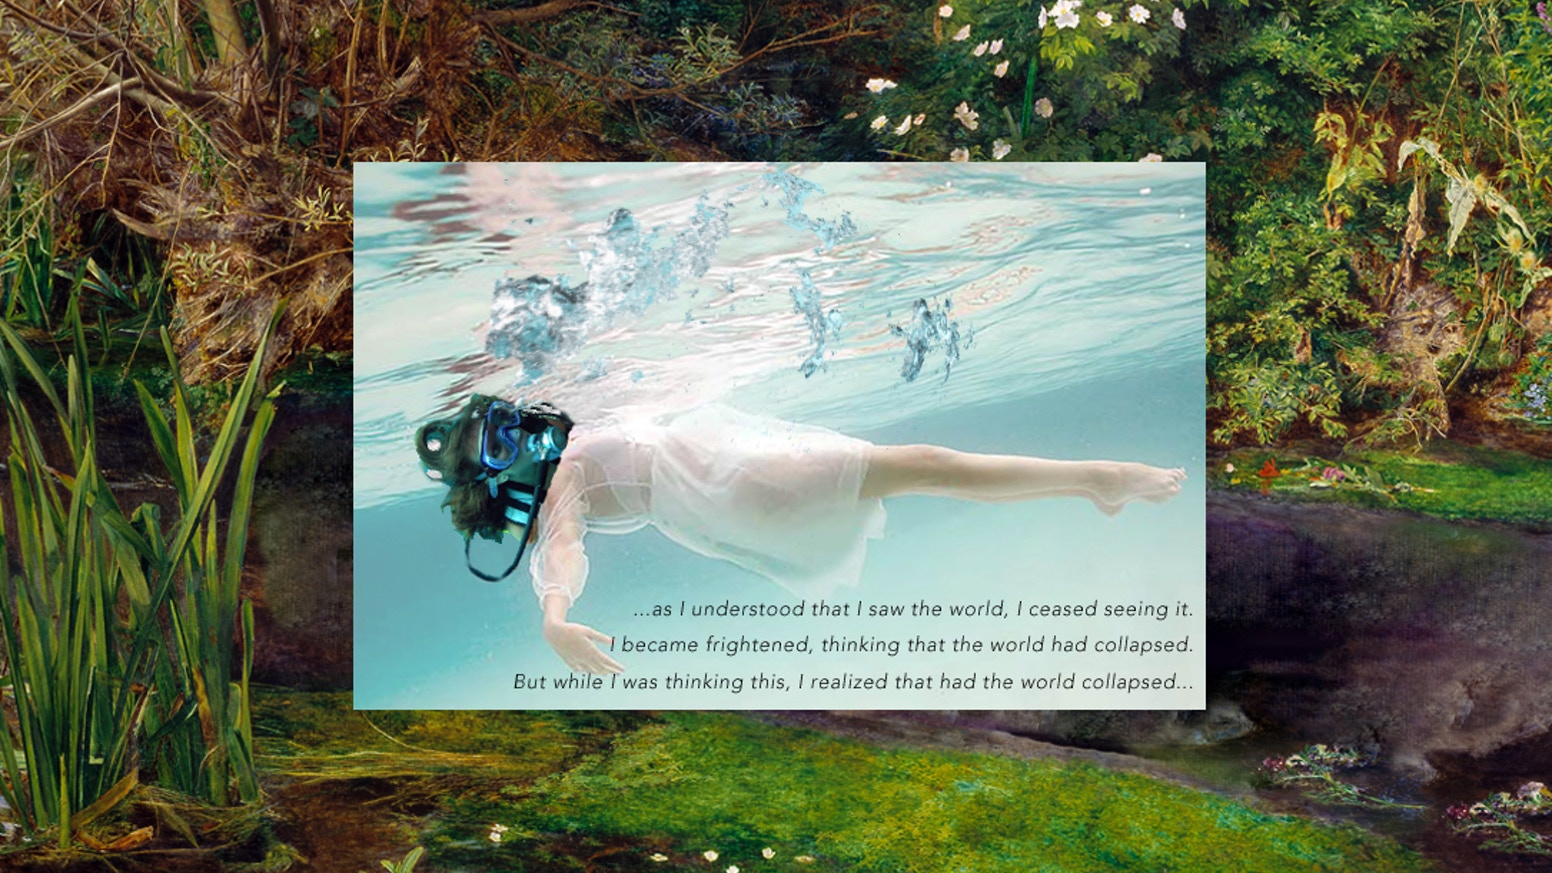 OPHELIA is an architectural live performance and video sculpture, focusing on the human destruction of the biosphere.